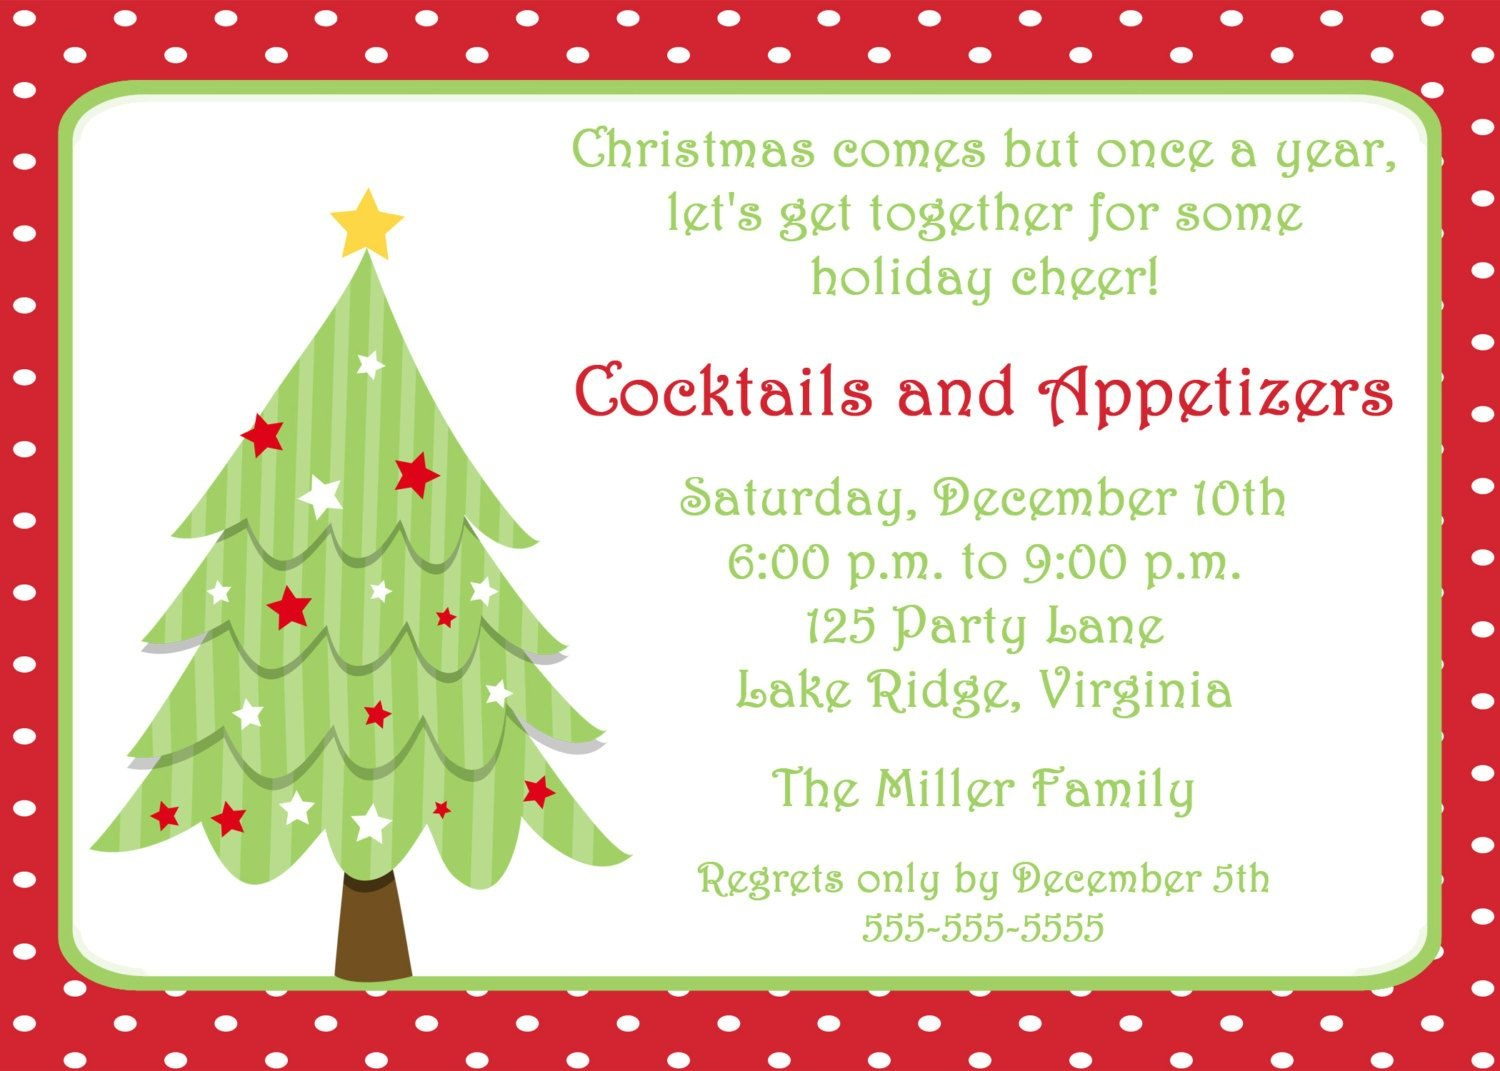 Free Invitations Templates Free | Free Christmas Invitation - Christmas Party Invitation Templates Free Printable